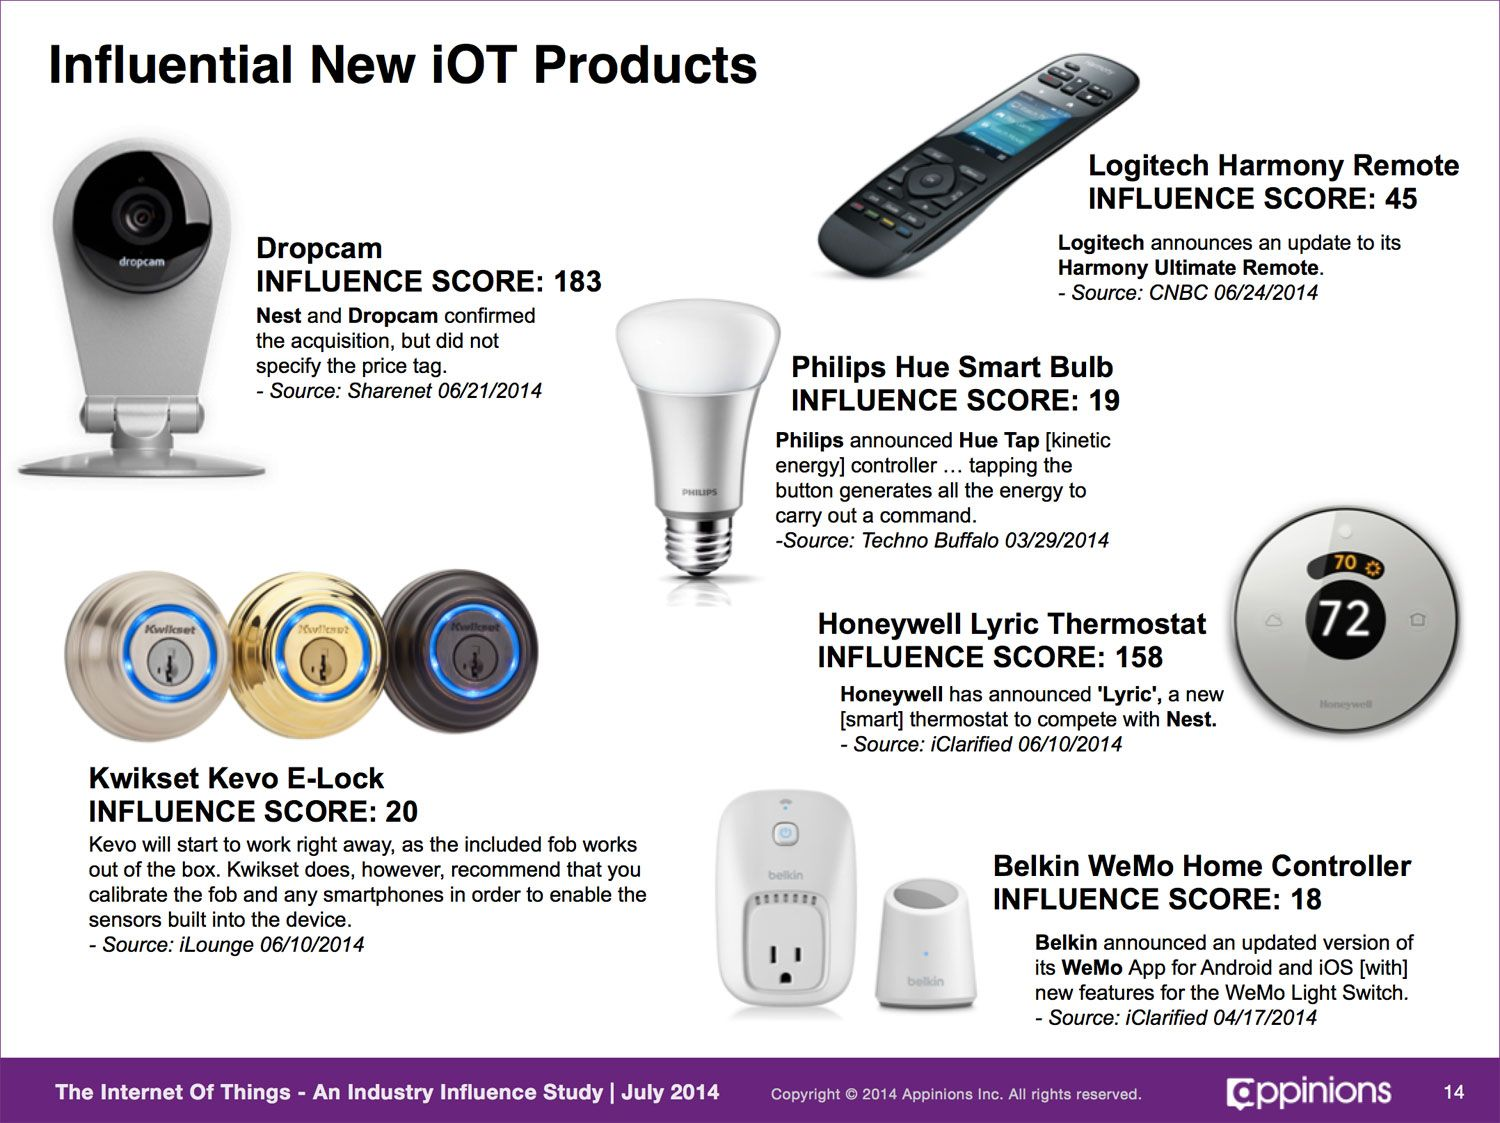 Apple And Google Dominate Internet Of Things Influence With Home Automation Efforts Iot Smart Bulb Smart Home Technology